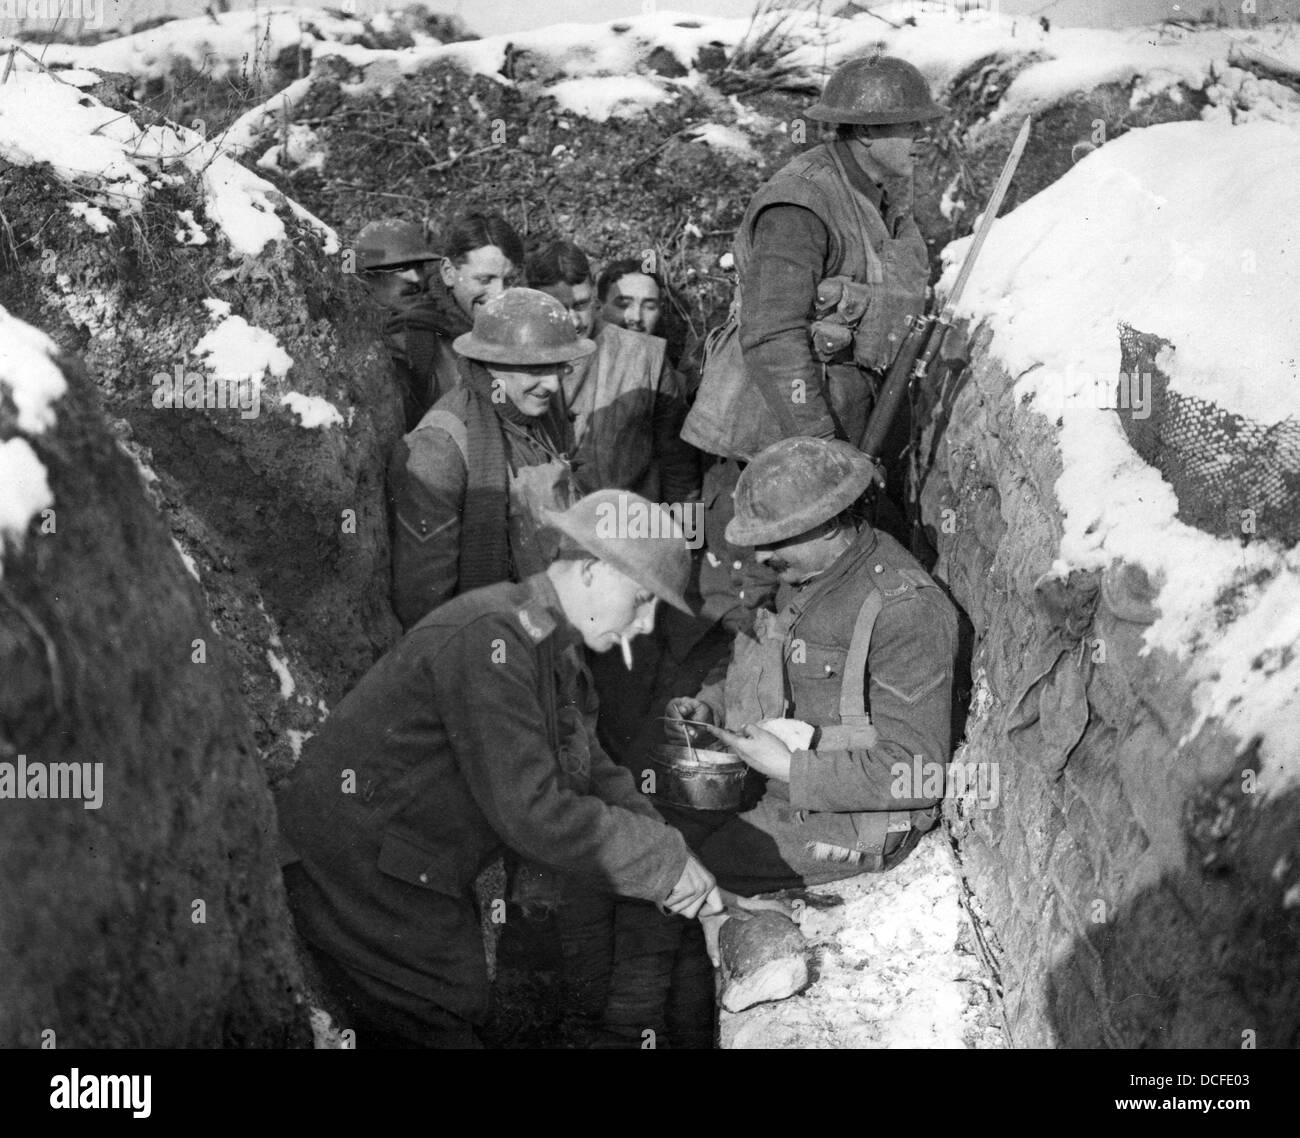 Great War. WW1 bread is served to troops in a front line trench - Stock Image